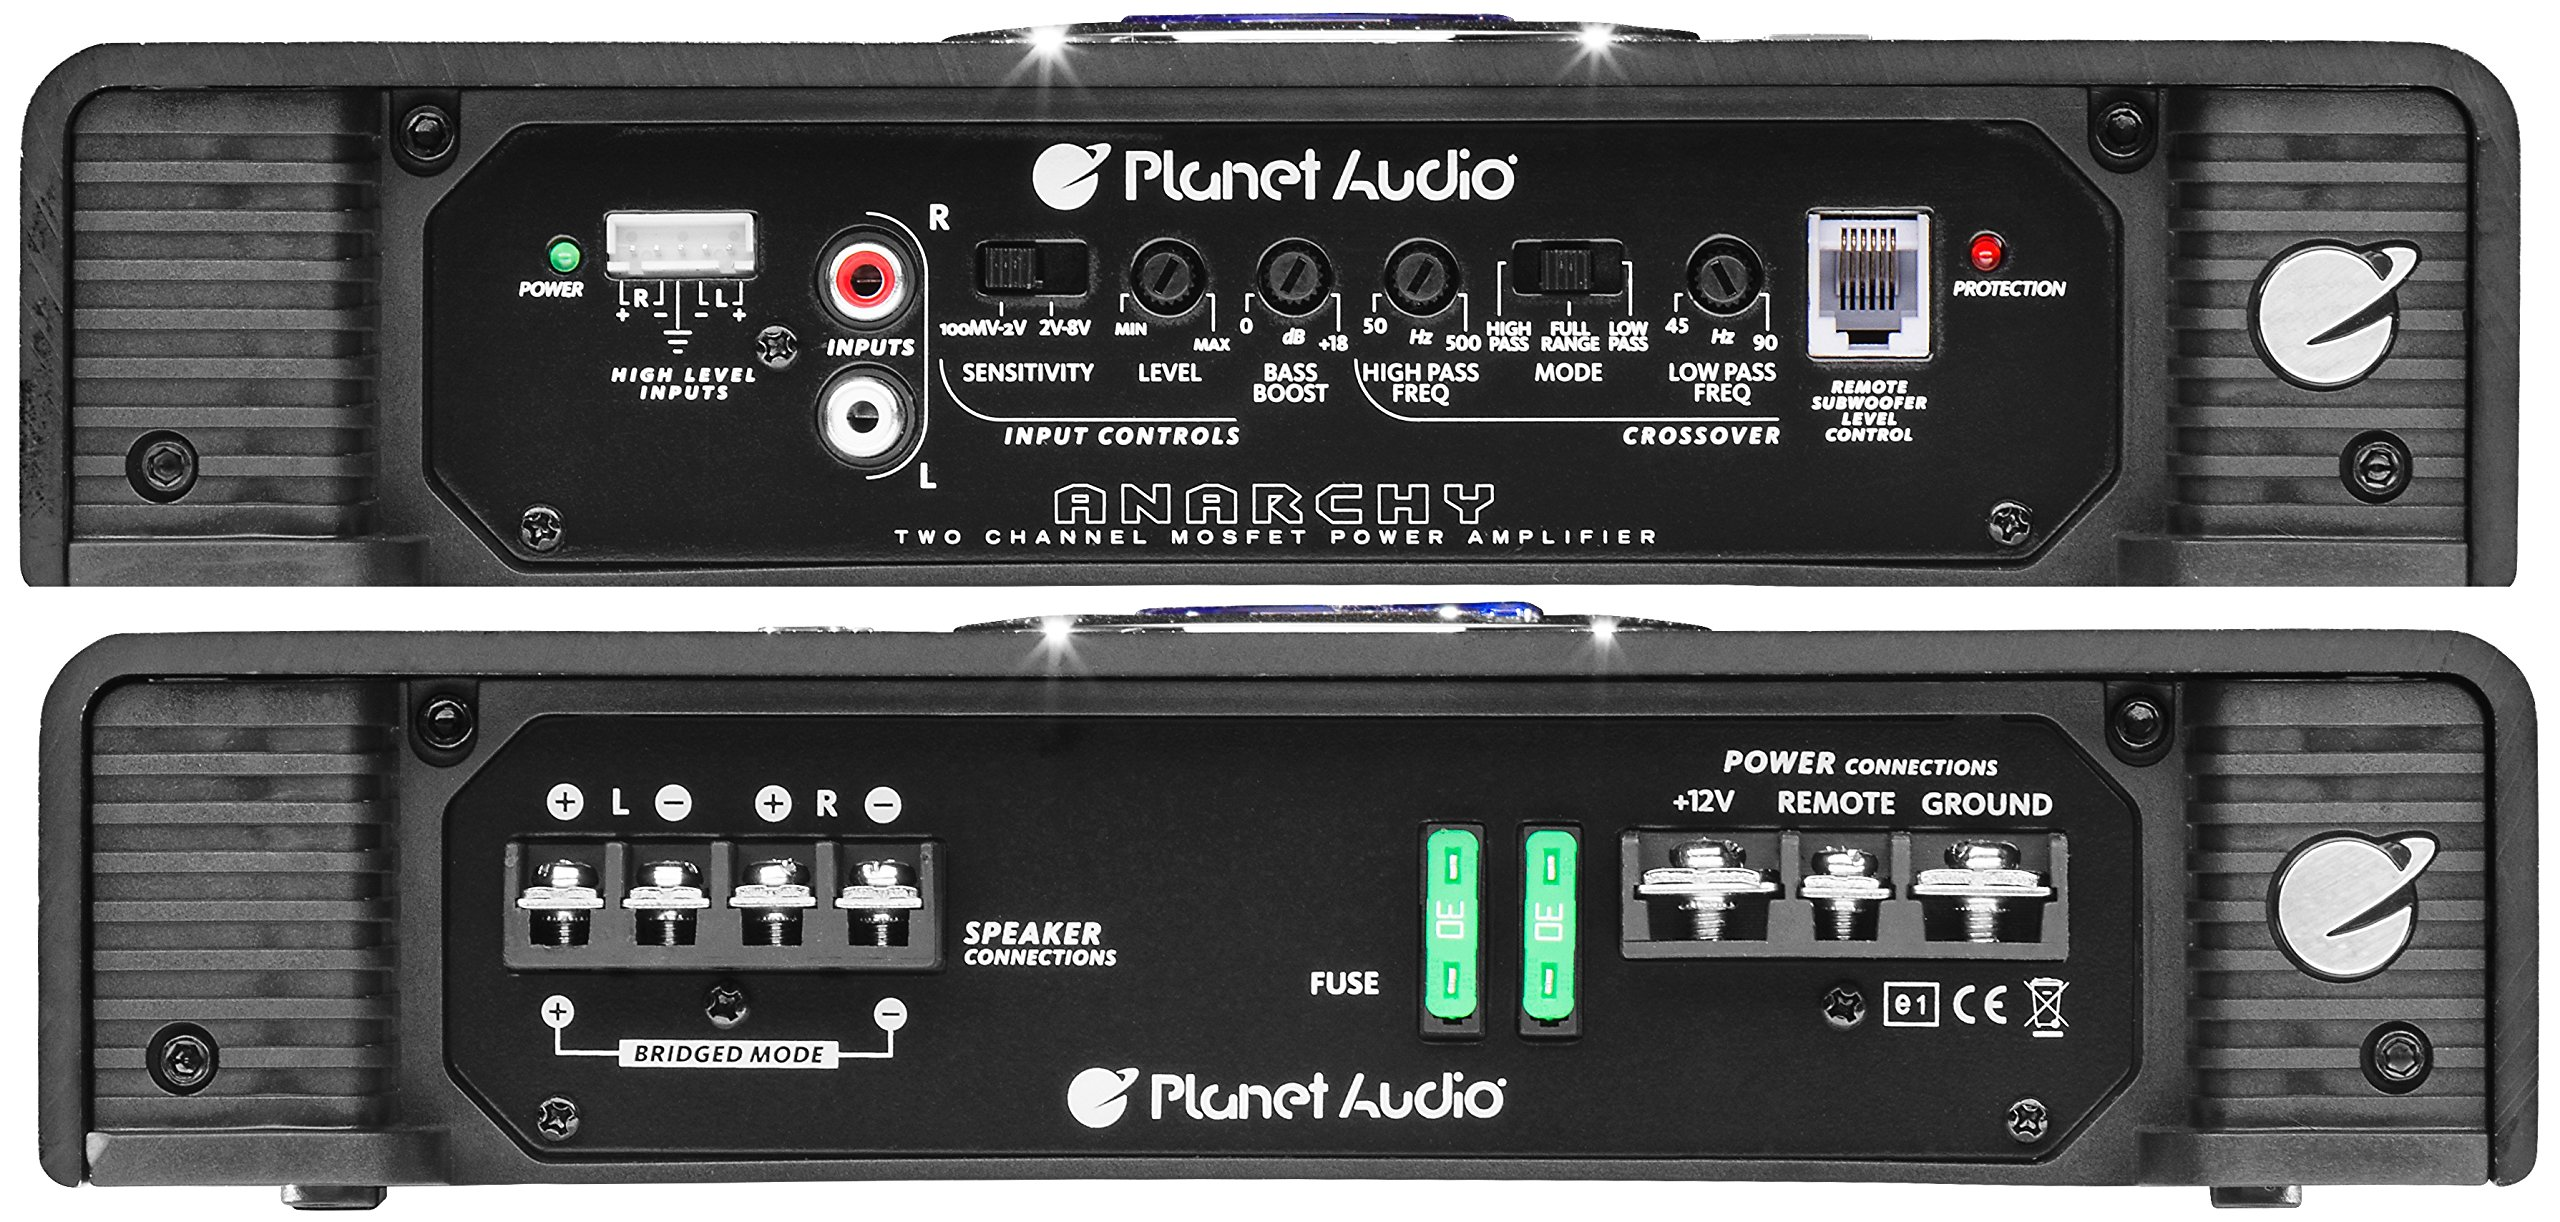 Planet Audio AC2600.2 Anarchy 2600 Watt, 2 Channel, 2/4 Ohm Stable Class A/B, Full Range, Bridgeable, MOSFET Car Amplifier with Remote Subwoofer Control by Planet Audio (Image #6)